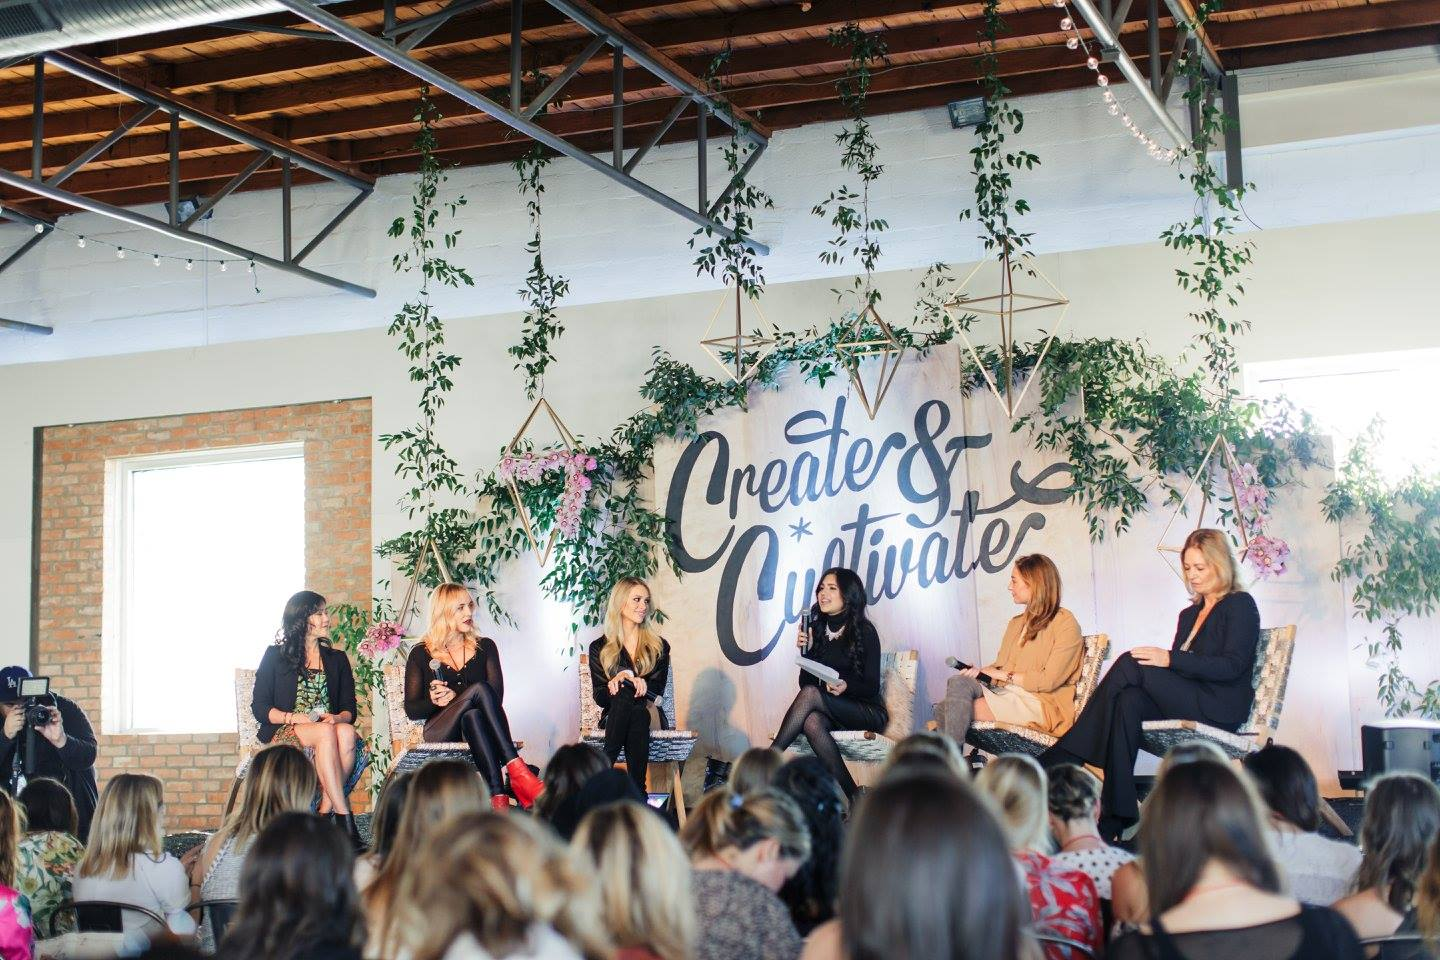 Create and Cultivate conference, best blogger conference, top blogger conferences, motivating conference for business owners, create + cultivate, C+C, create & cultivate, inspirational creative conference, pretty in the pines blog